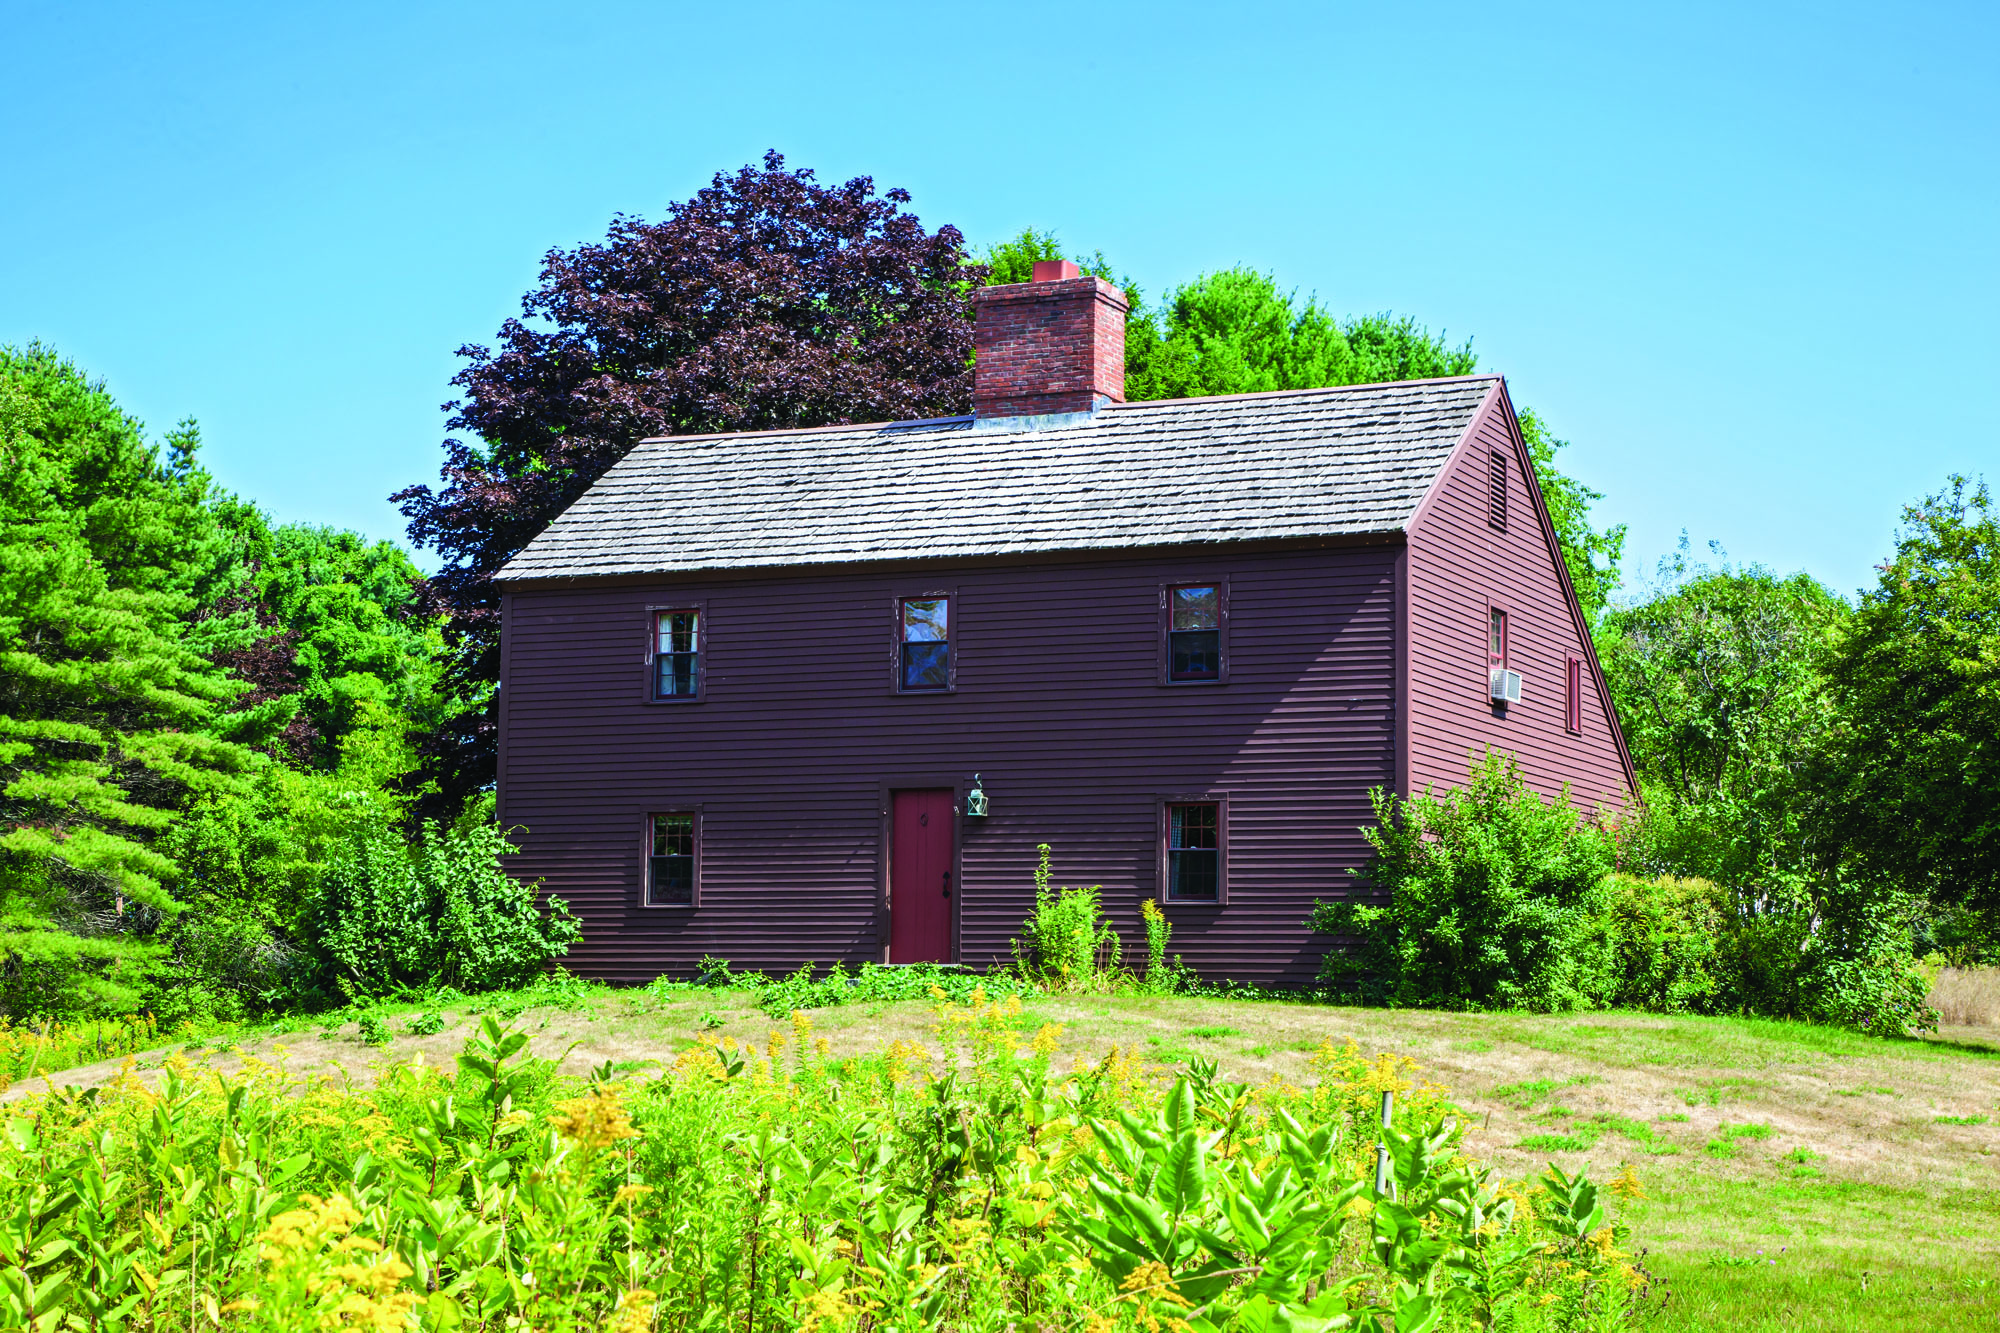 Authentic Replica House in Maine